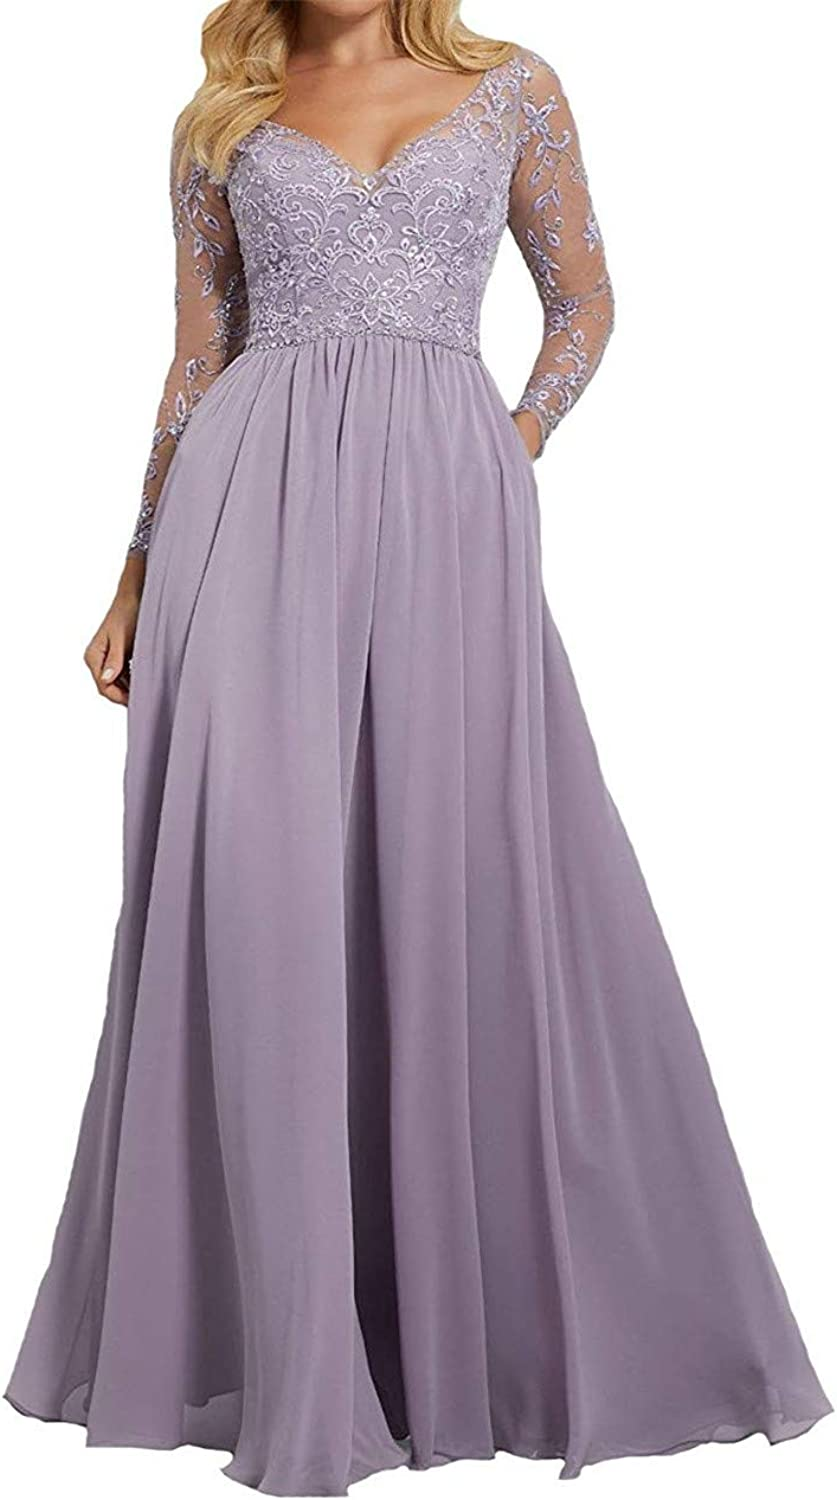 Sophie Women's Long Sleeves Prom Dresses Lace V Neck Evening Formal Bridesmaid Dress 2019 Q033